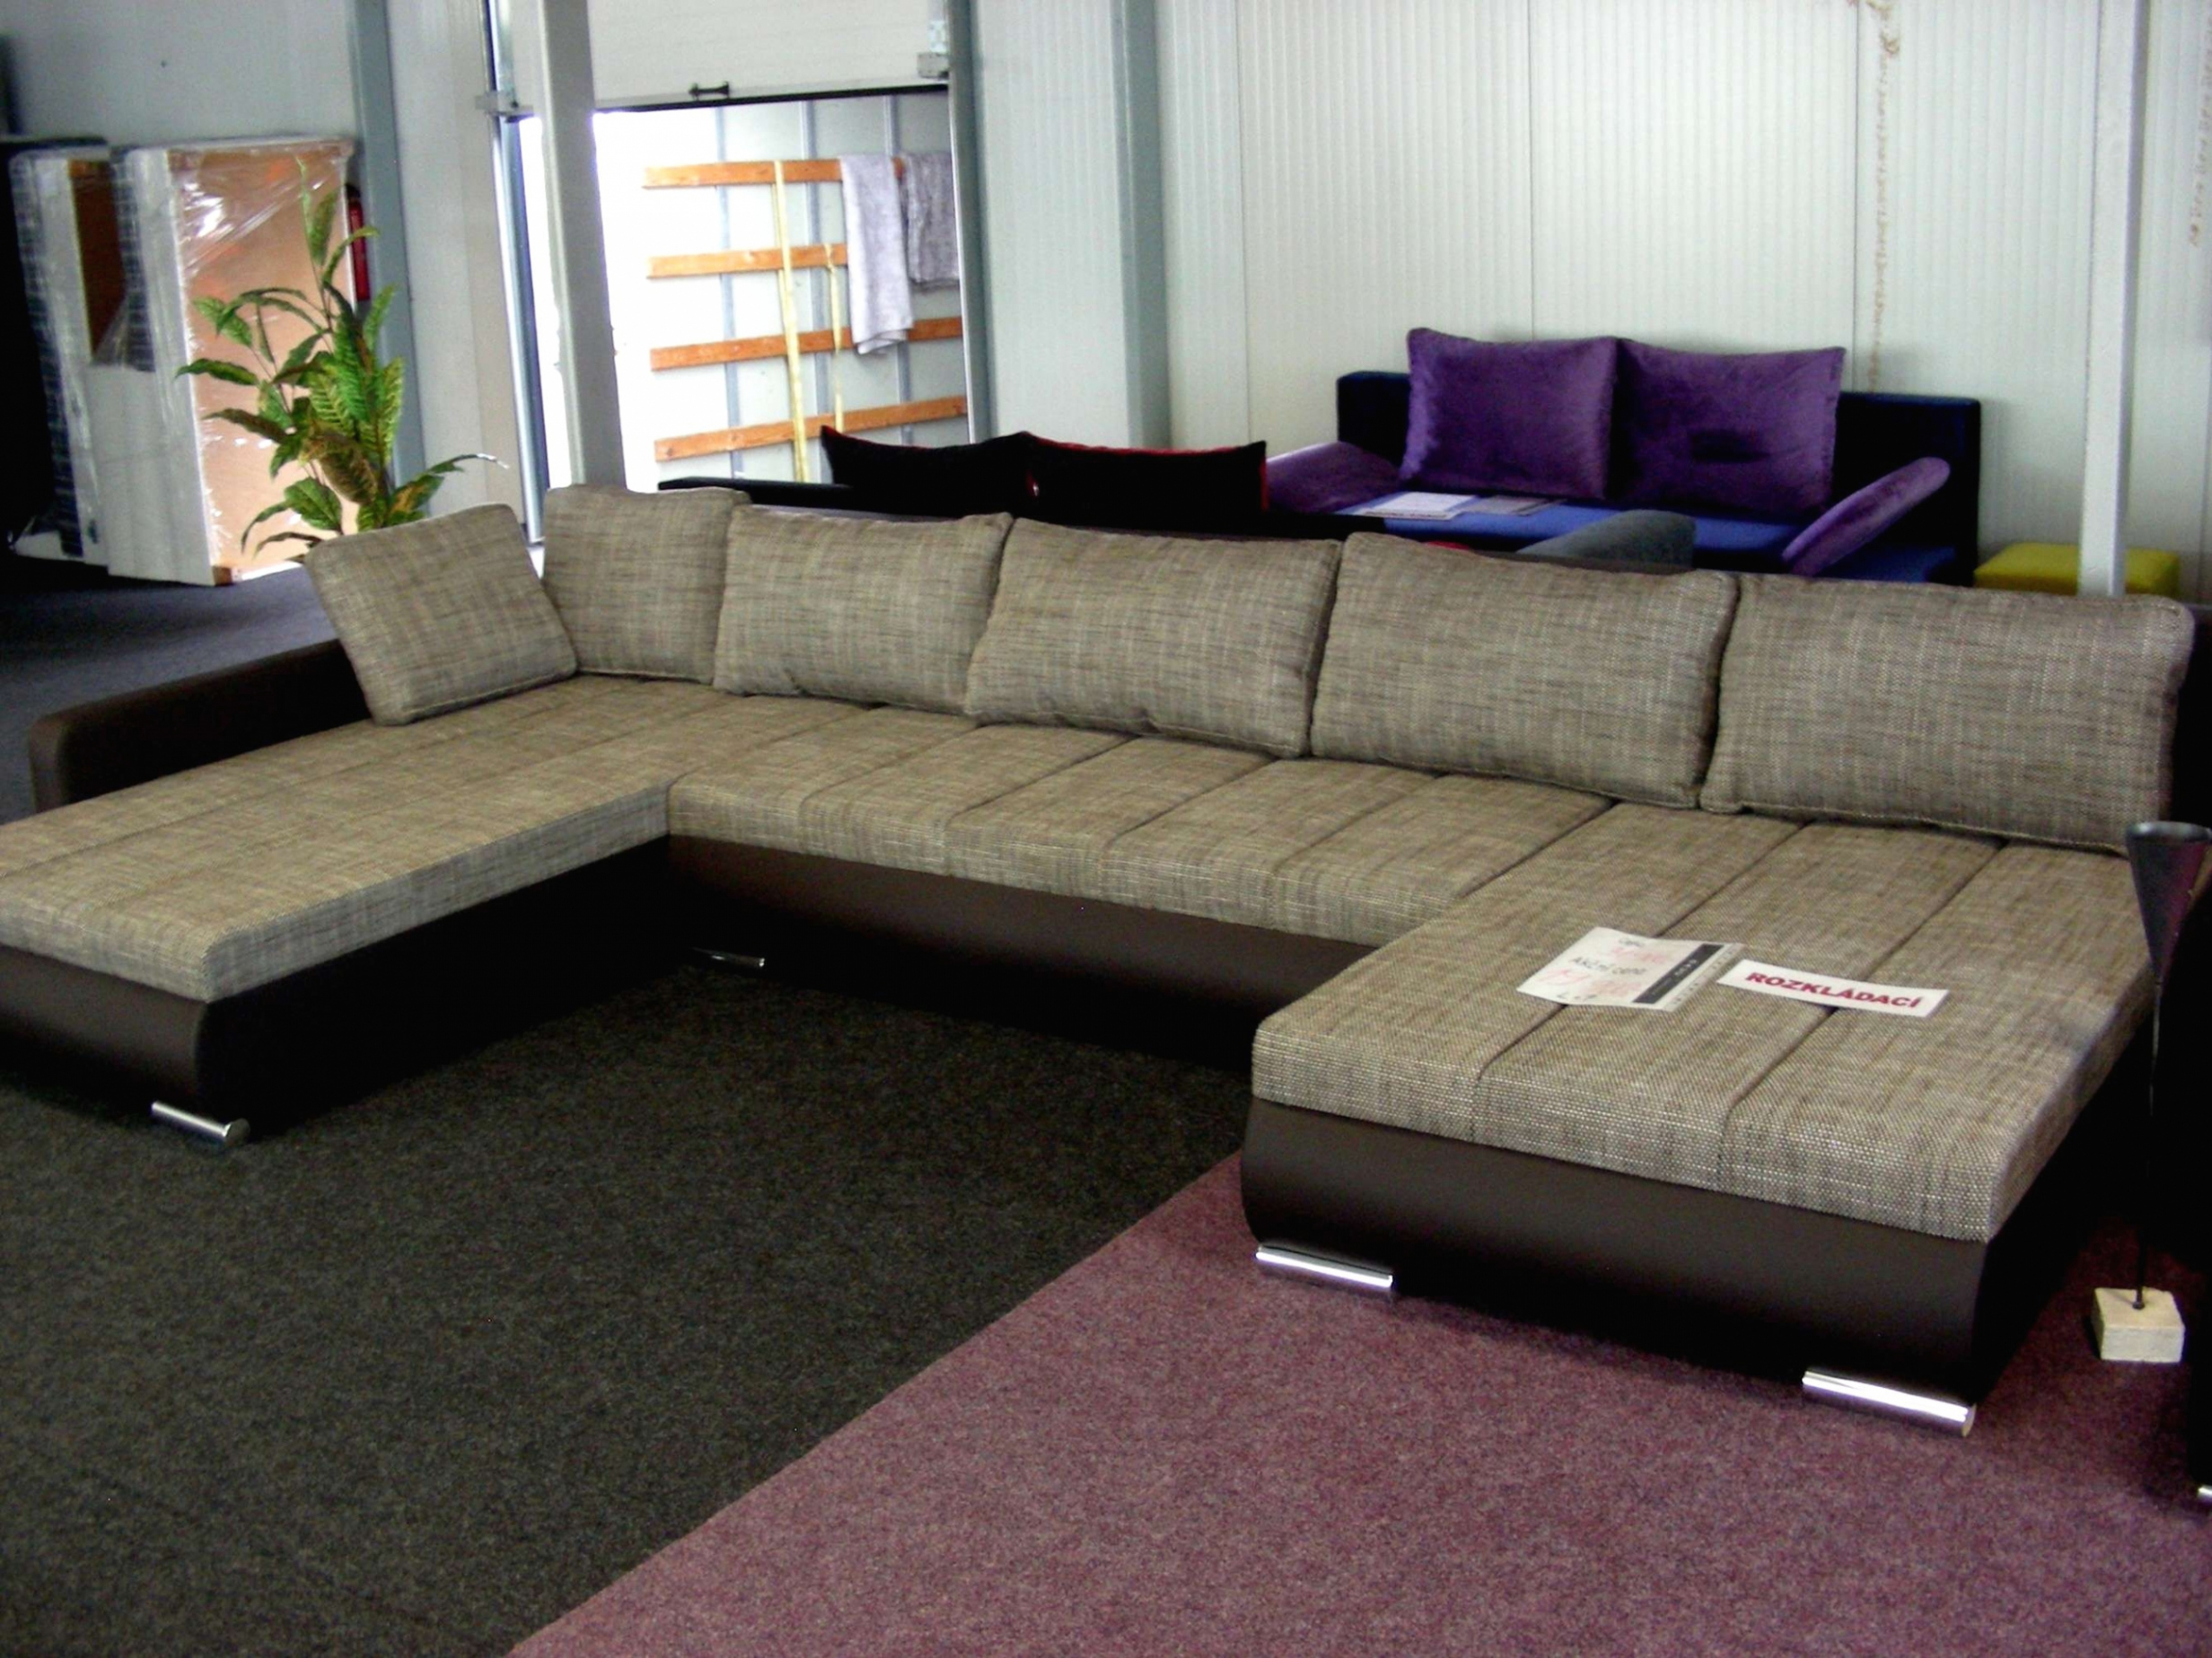 sofa mit beleuchtung yct projekte graue couch dekorieren graue couch dekorieren